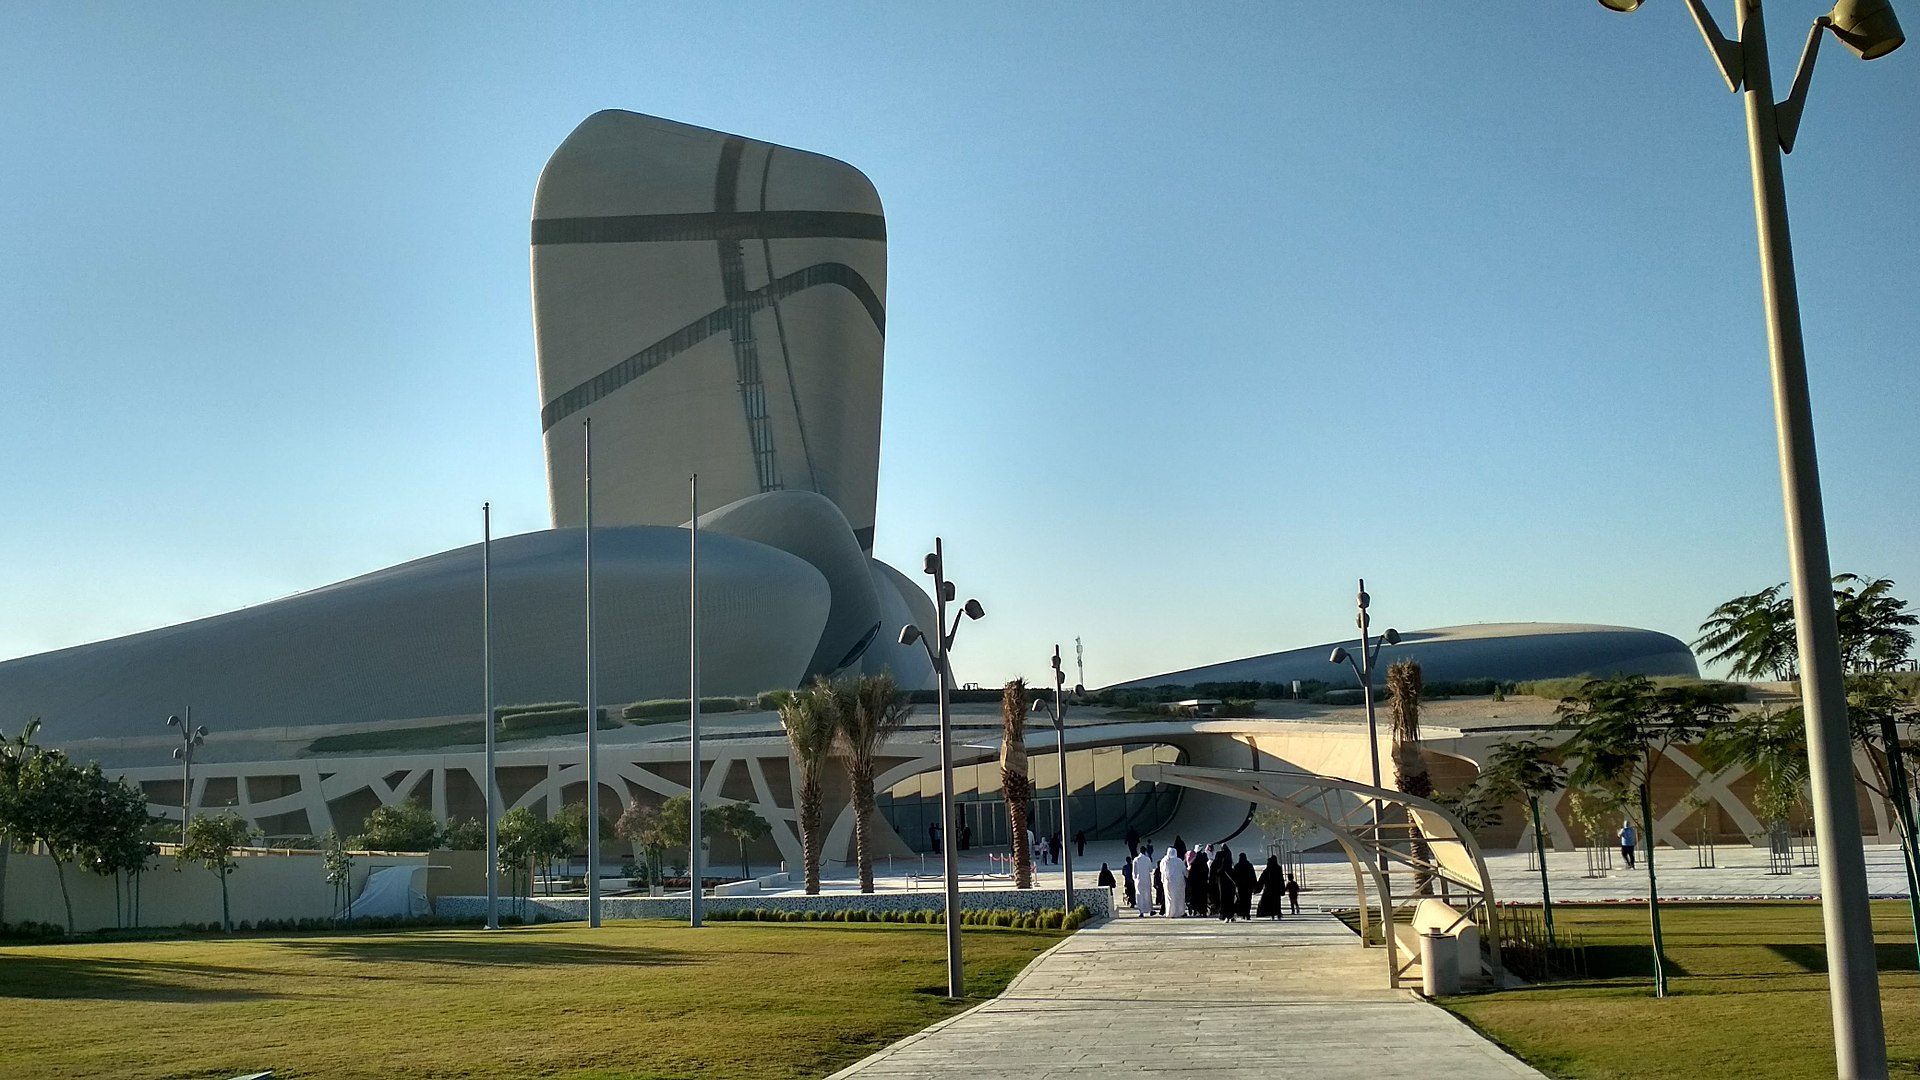 King Abdulaziz Center for World Culture